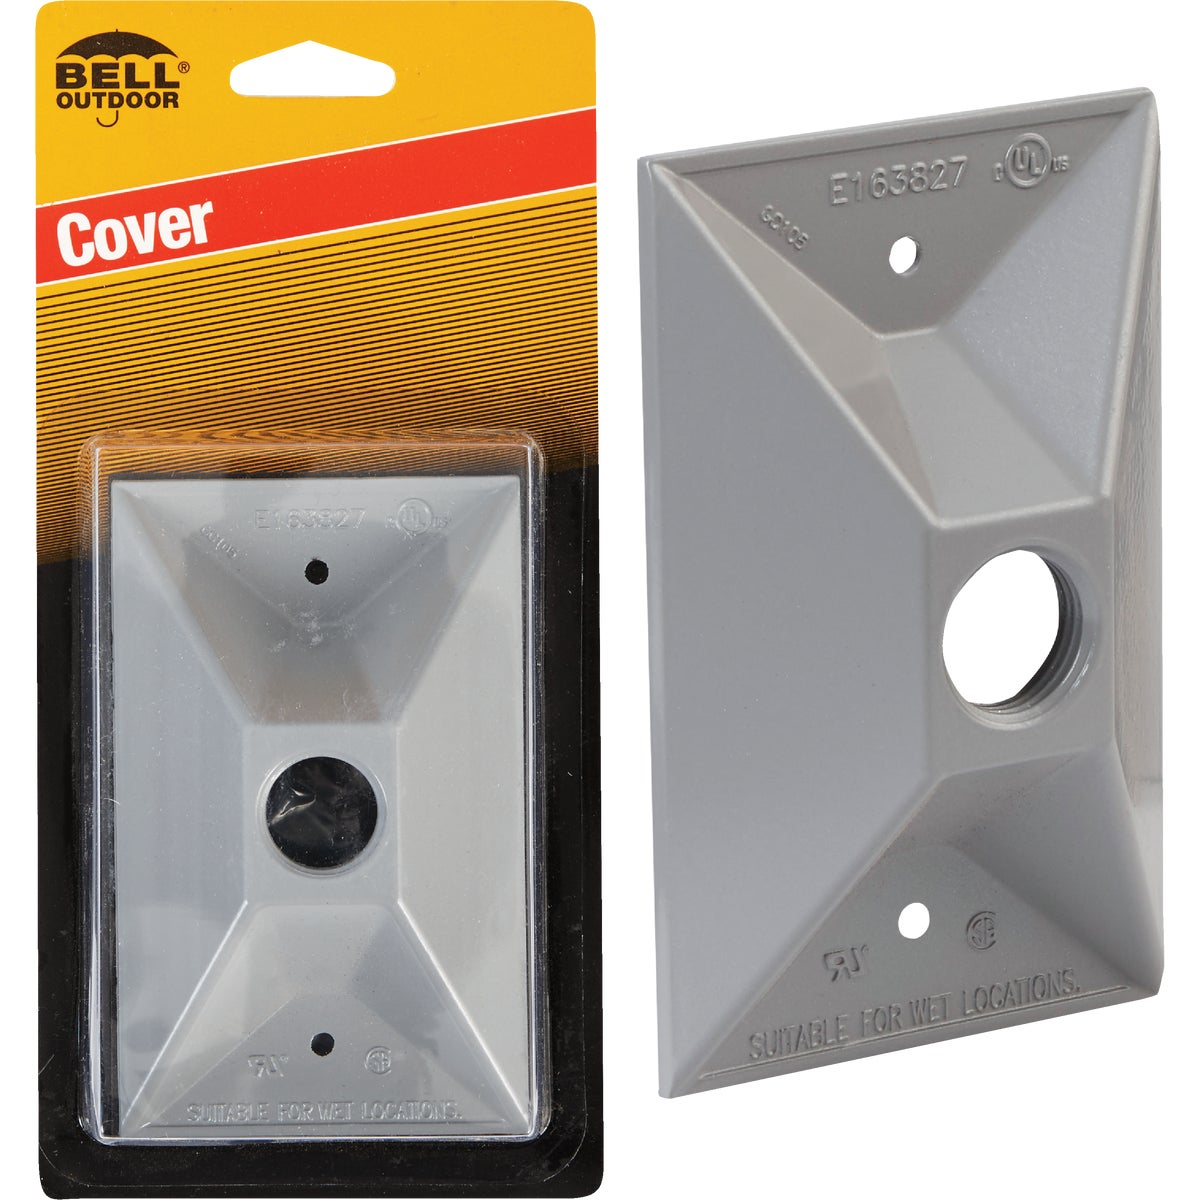 GRAY OUTDOOR COVER